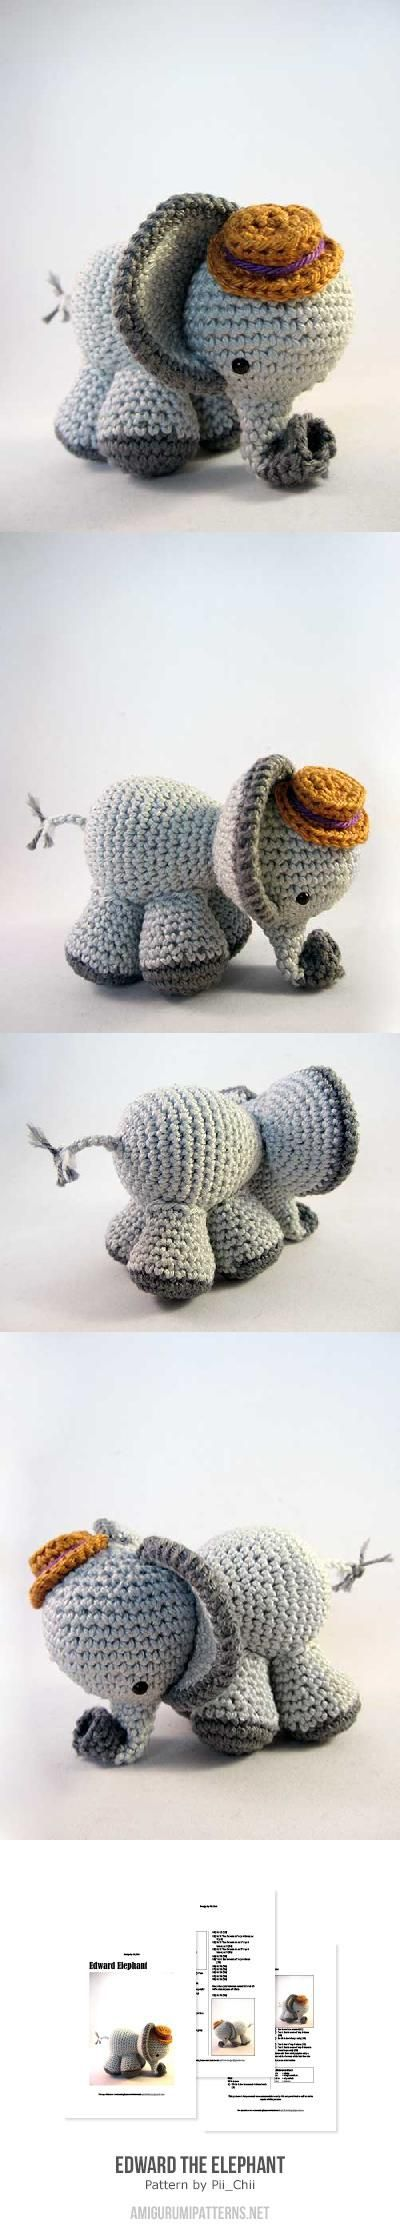 Edward the Elephant amigurumi pattern by Pii_Chii | Elefantes ...